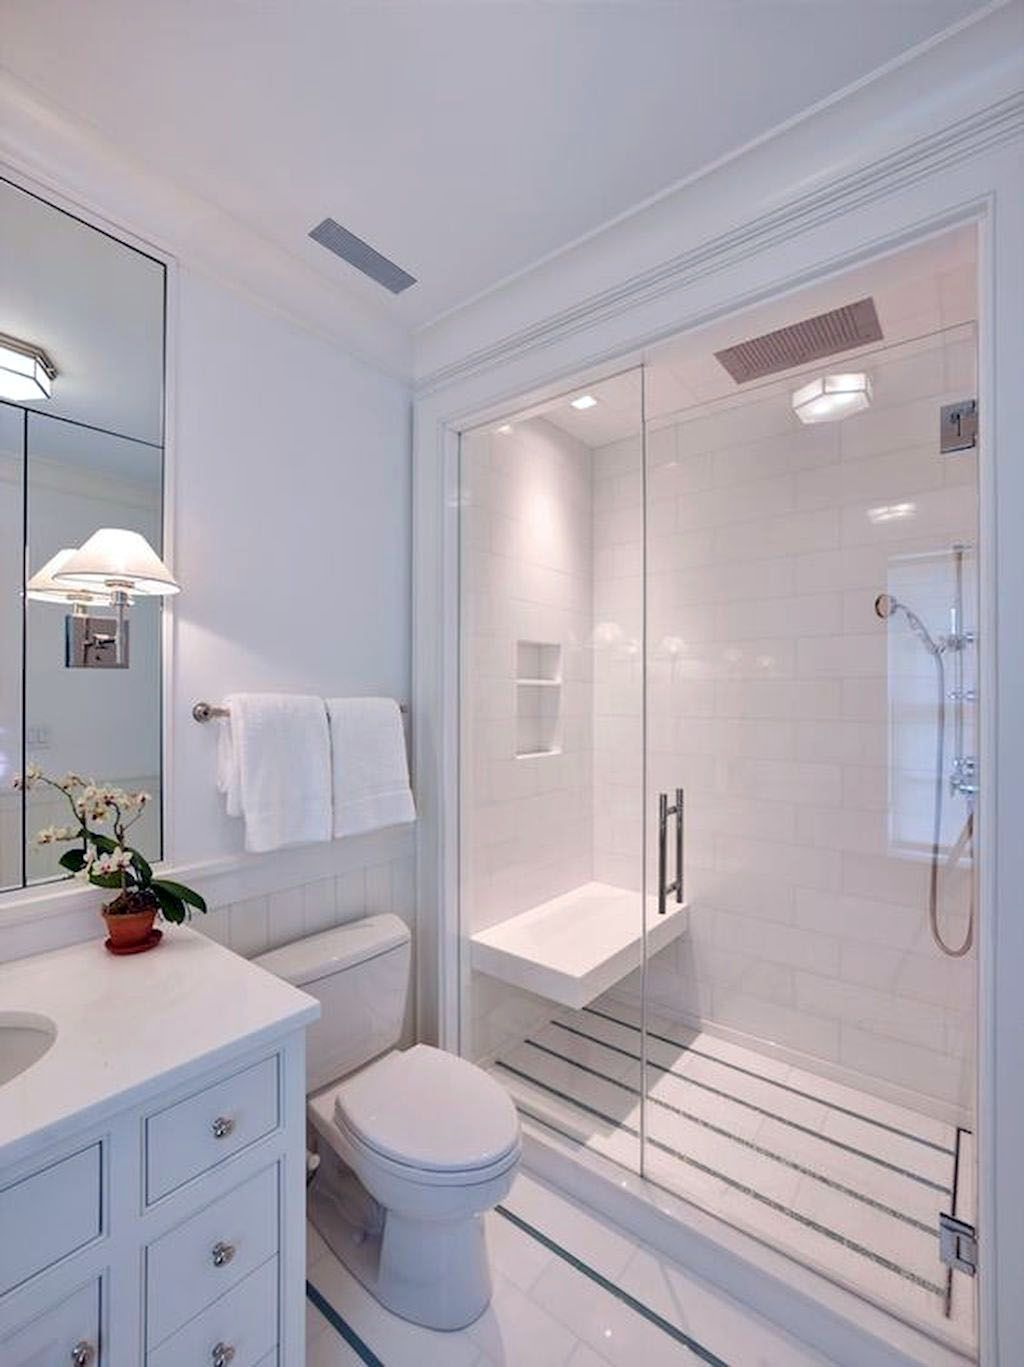 Marvelous Small Bathroom Remodel Cost Philippines Only On This Page Basement Bathroom Remodeling Bathroom Remodel Shower Bathroom Tile Designs